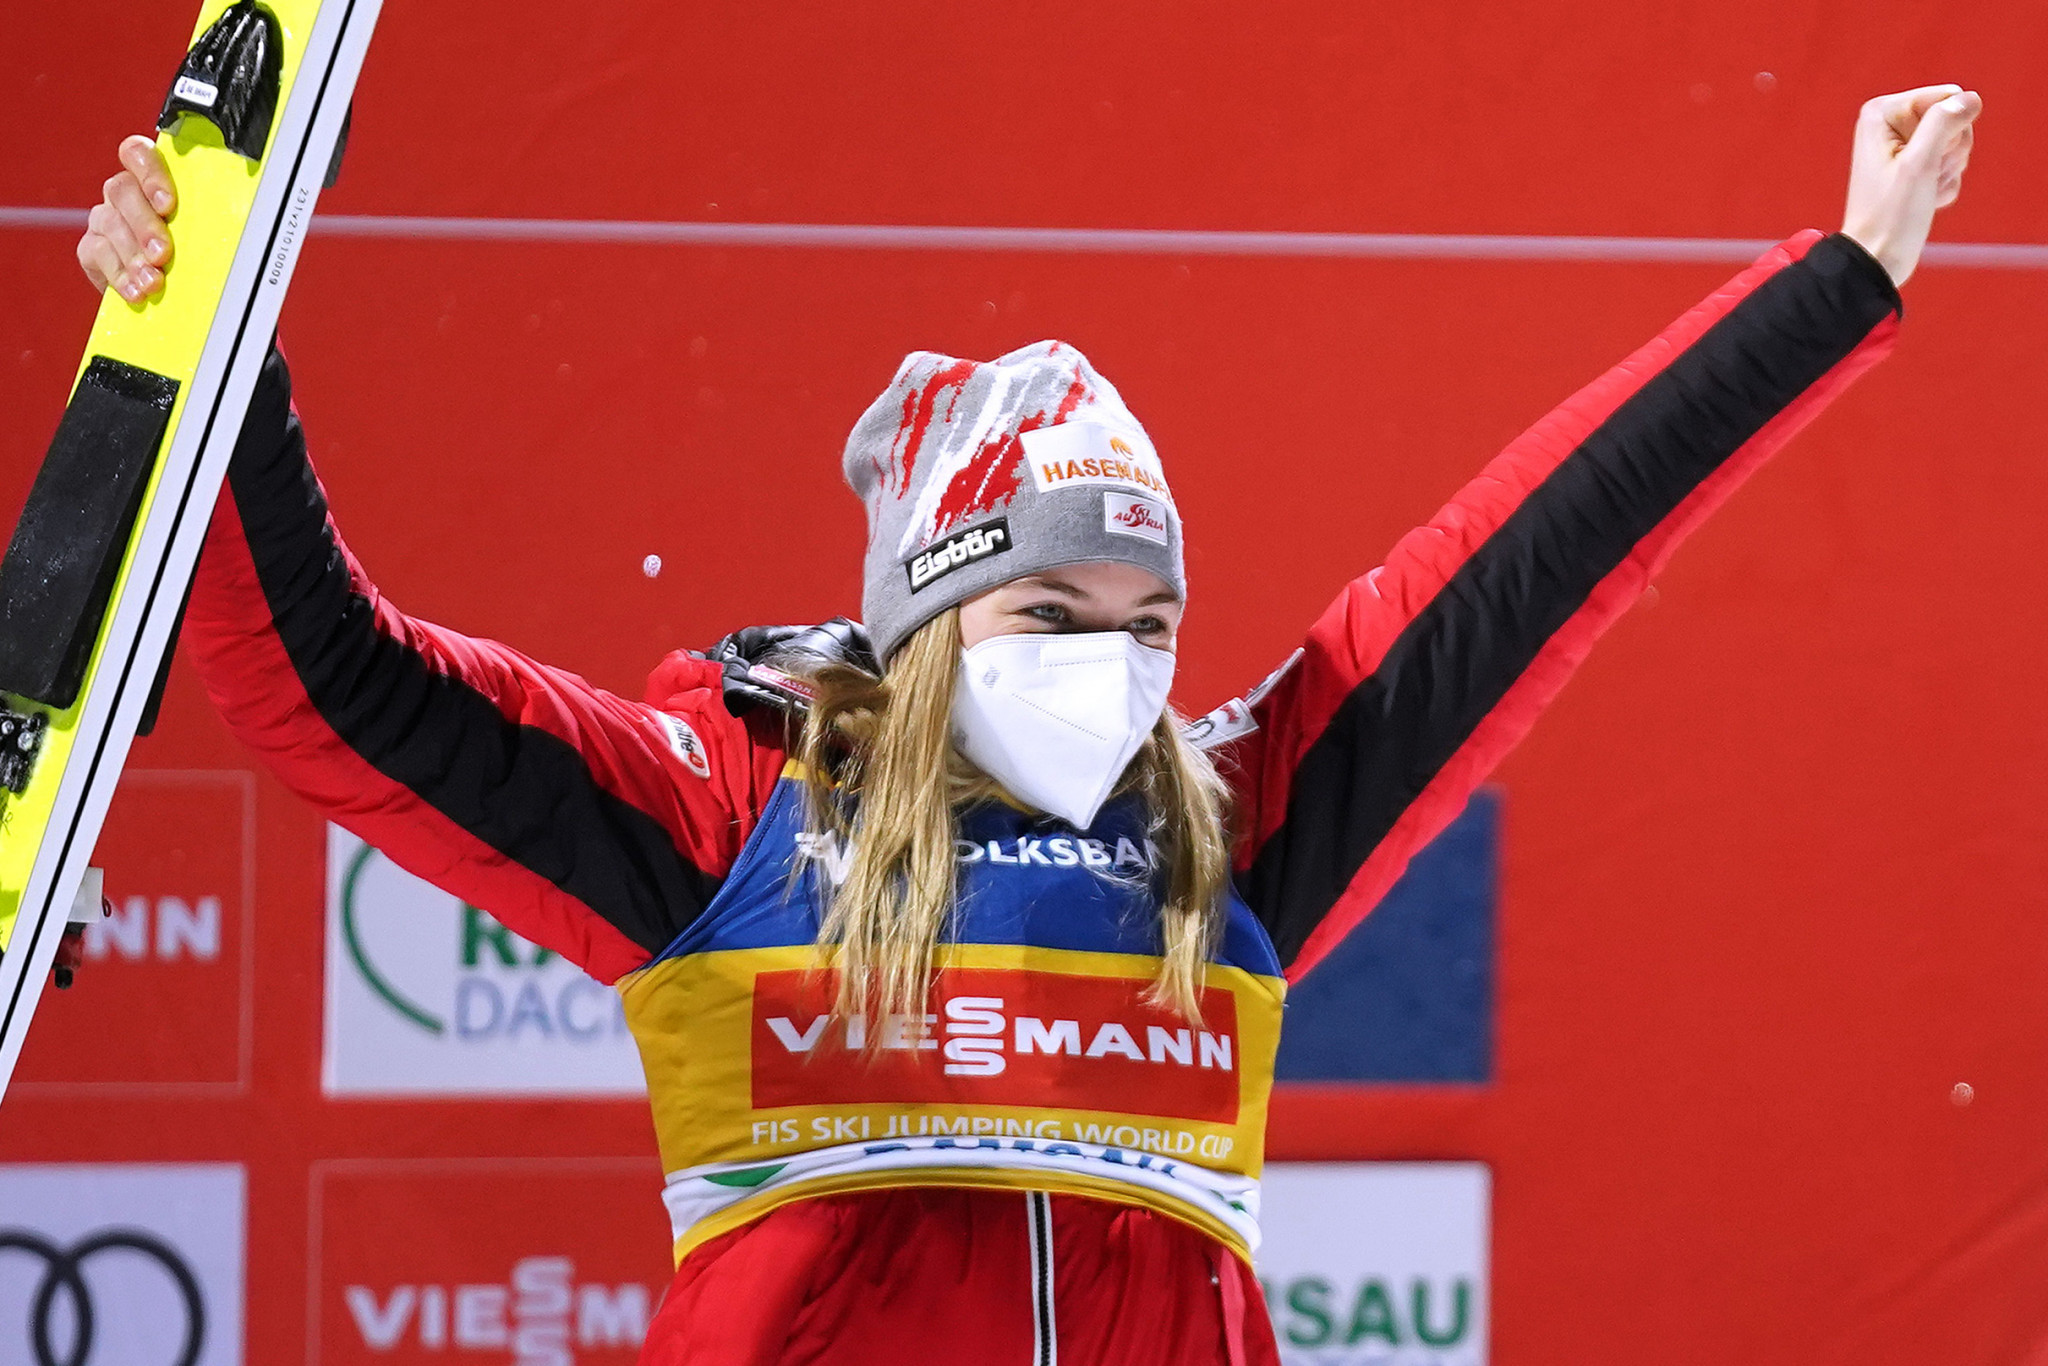 Kramer claims third straight win to keep Women's Ski Jumping World Cup hopes alive